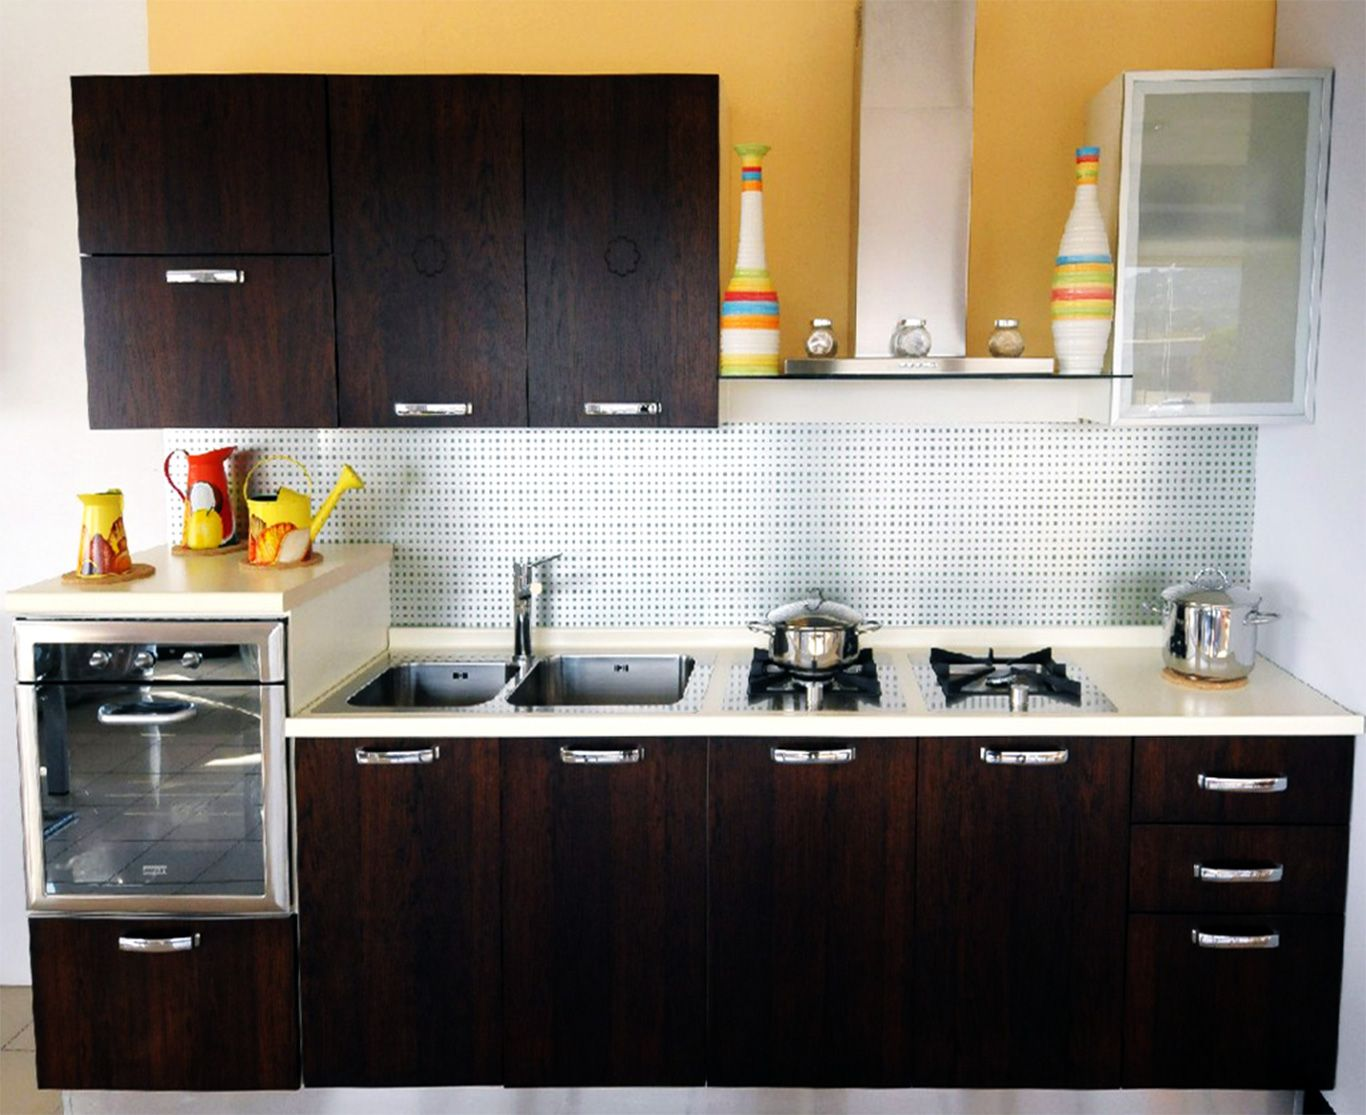 Pune kitchens is the modular kitchen shutters supplier for Simple kitchen cabinet designs